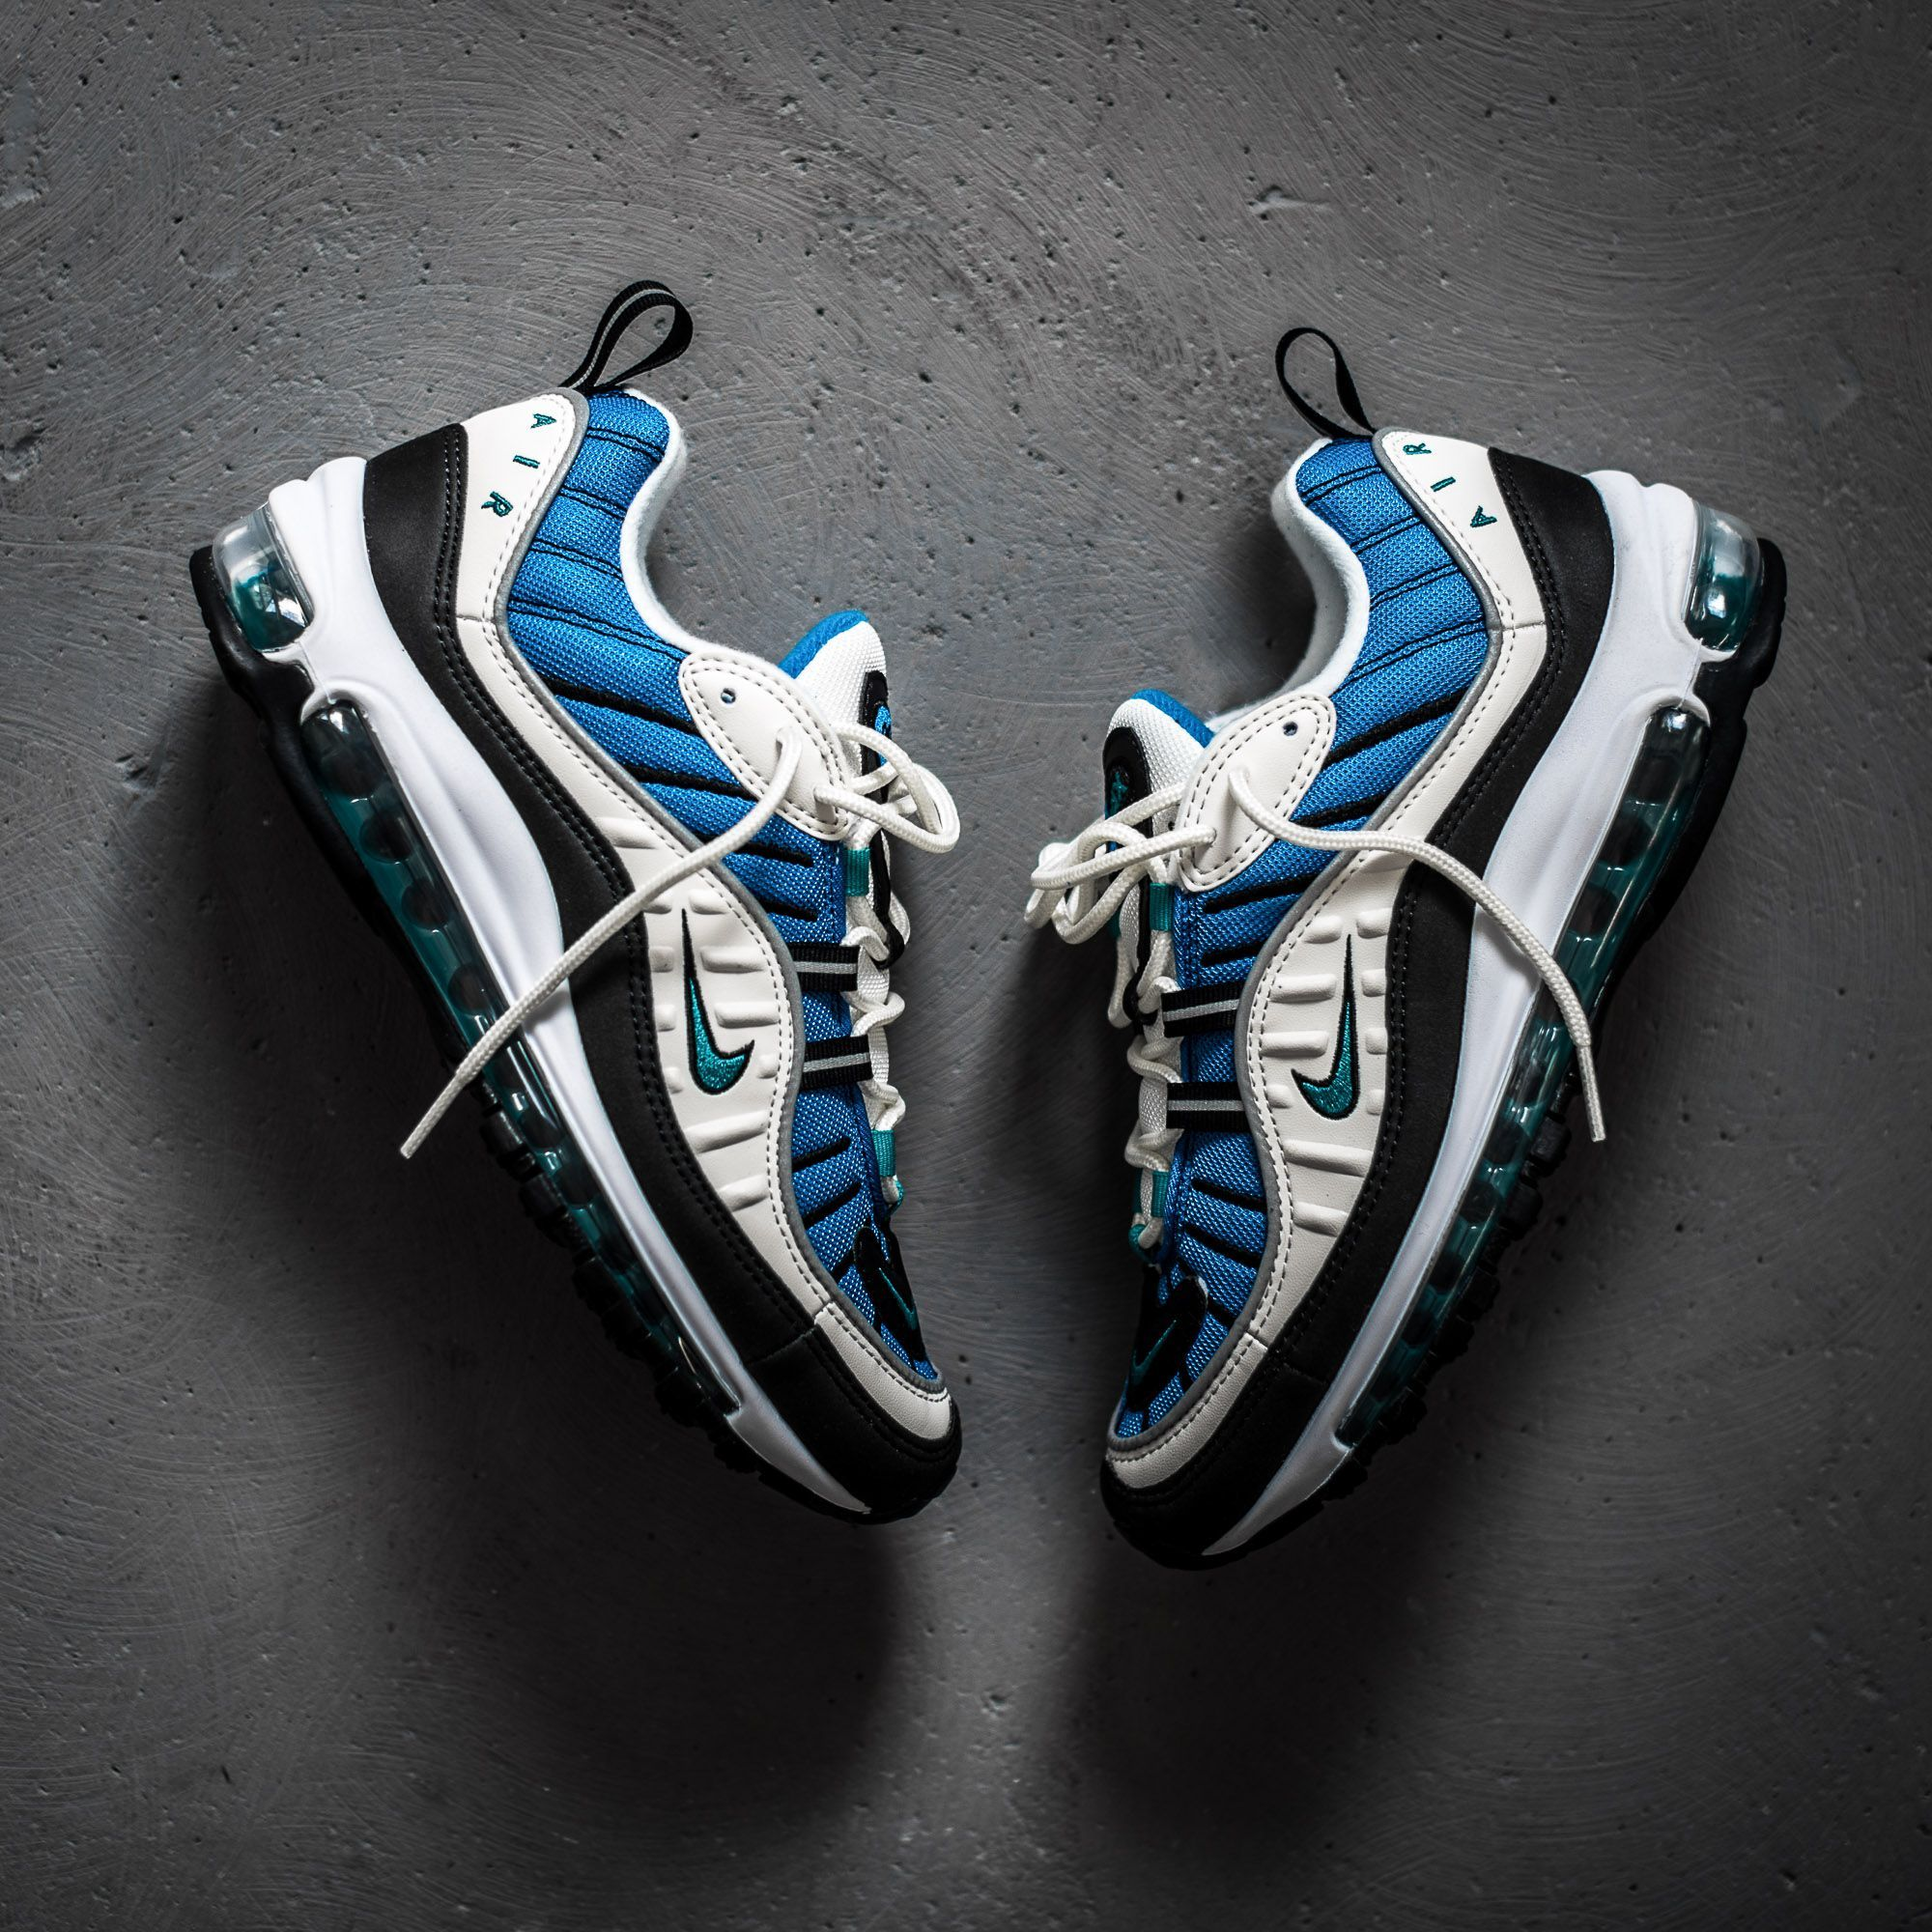 ff4d07a570 Brand-new women's silhouettes of the Nike Air Max 98 like this